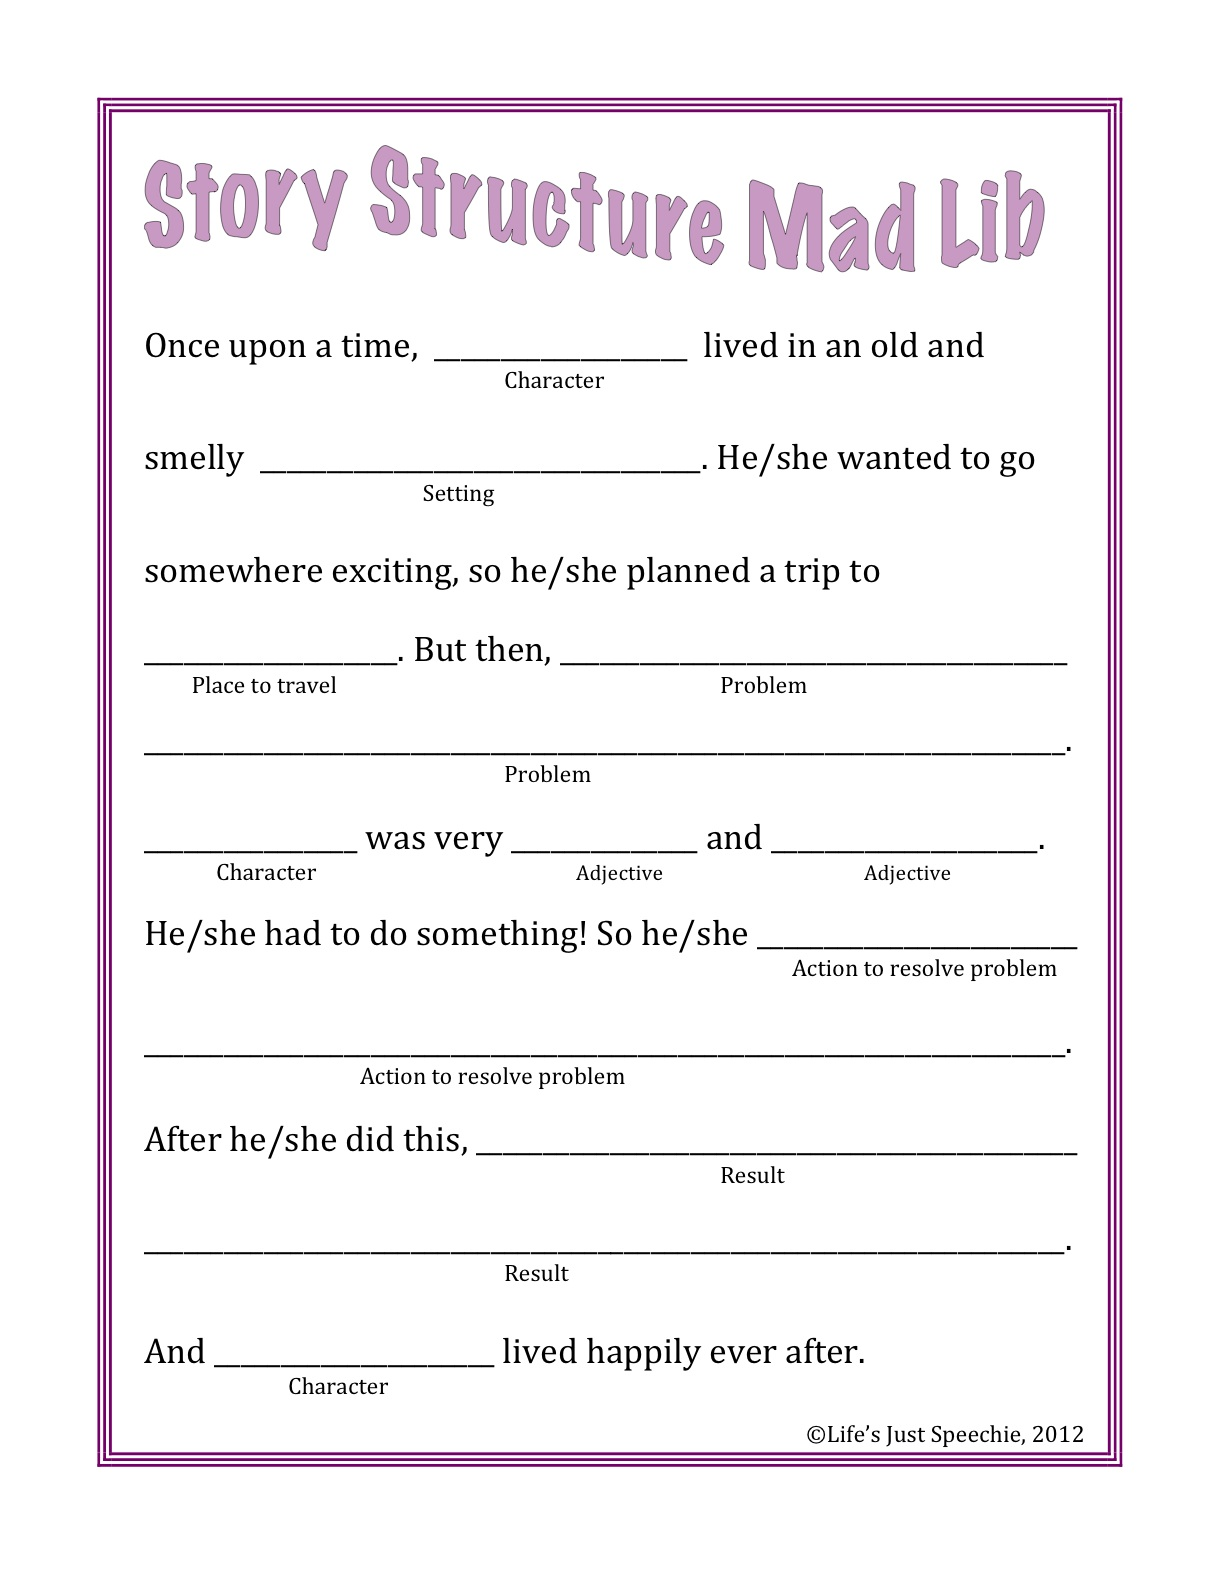 Life Is Just Speechie Story Structure Mad Lib